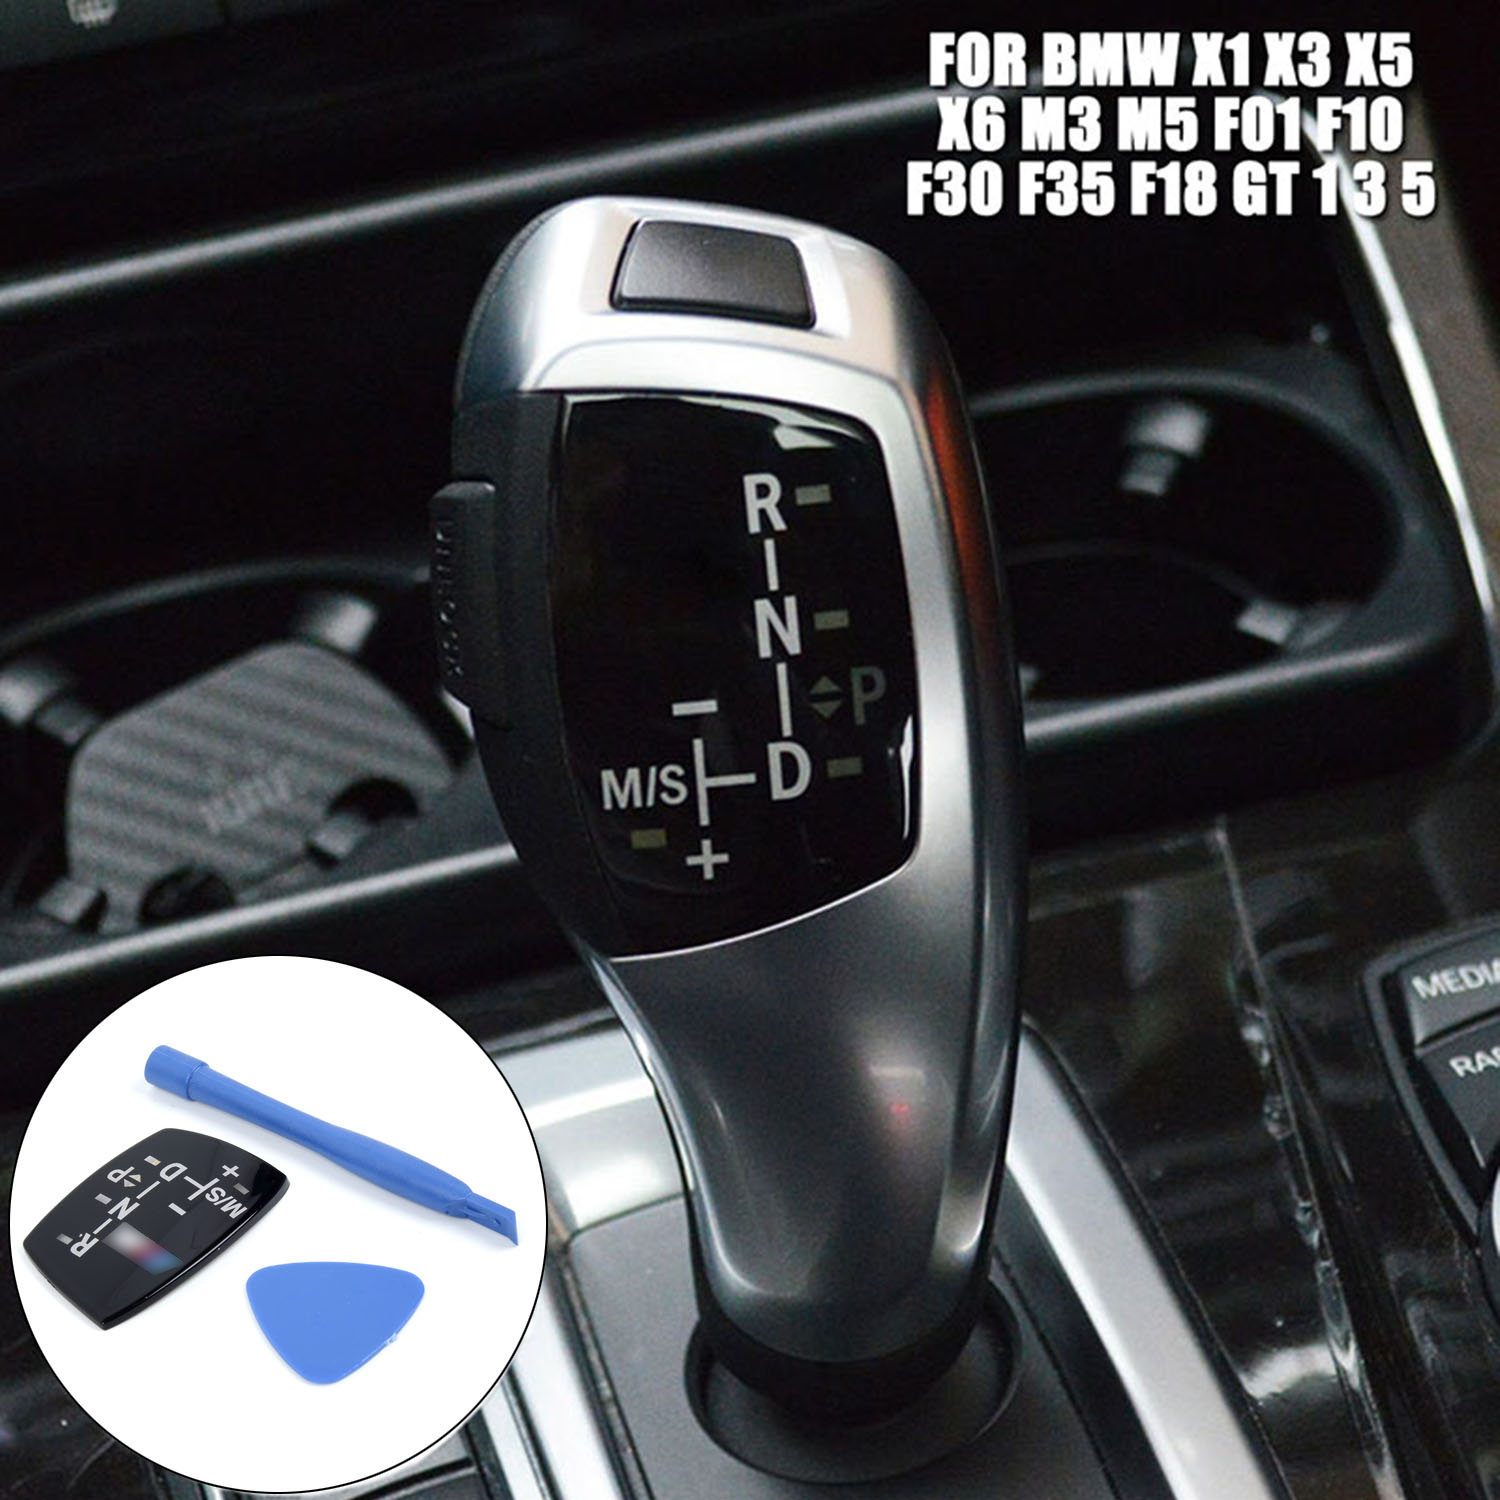 1 Set Car Gear Shift Knob Panel Sticker Kit Fit For BMW X1 X3 X5 X6 M3 M5 F01 F10 F30 F35 F18 Interior Parts